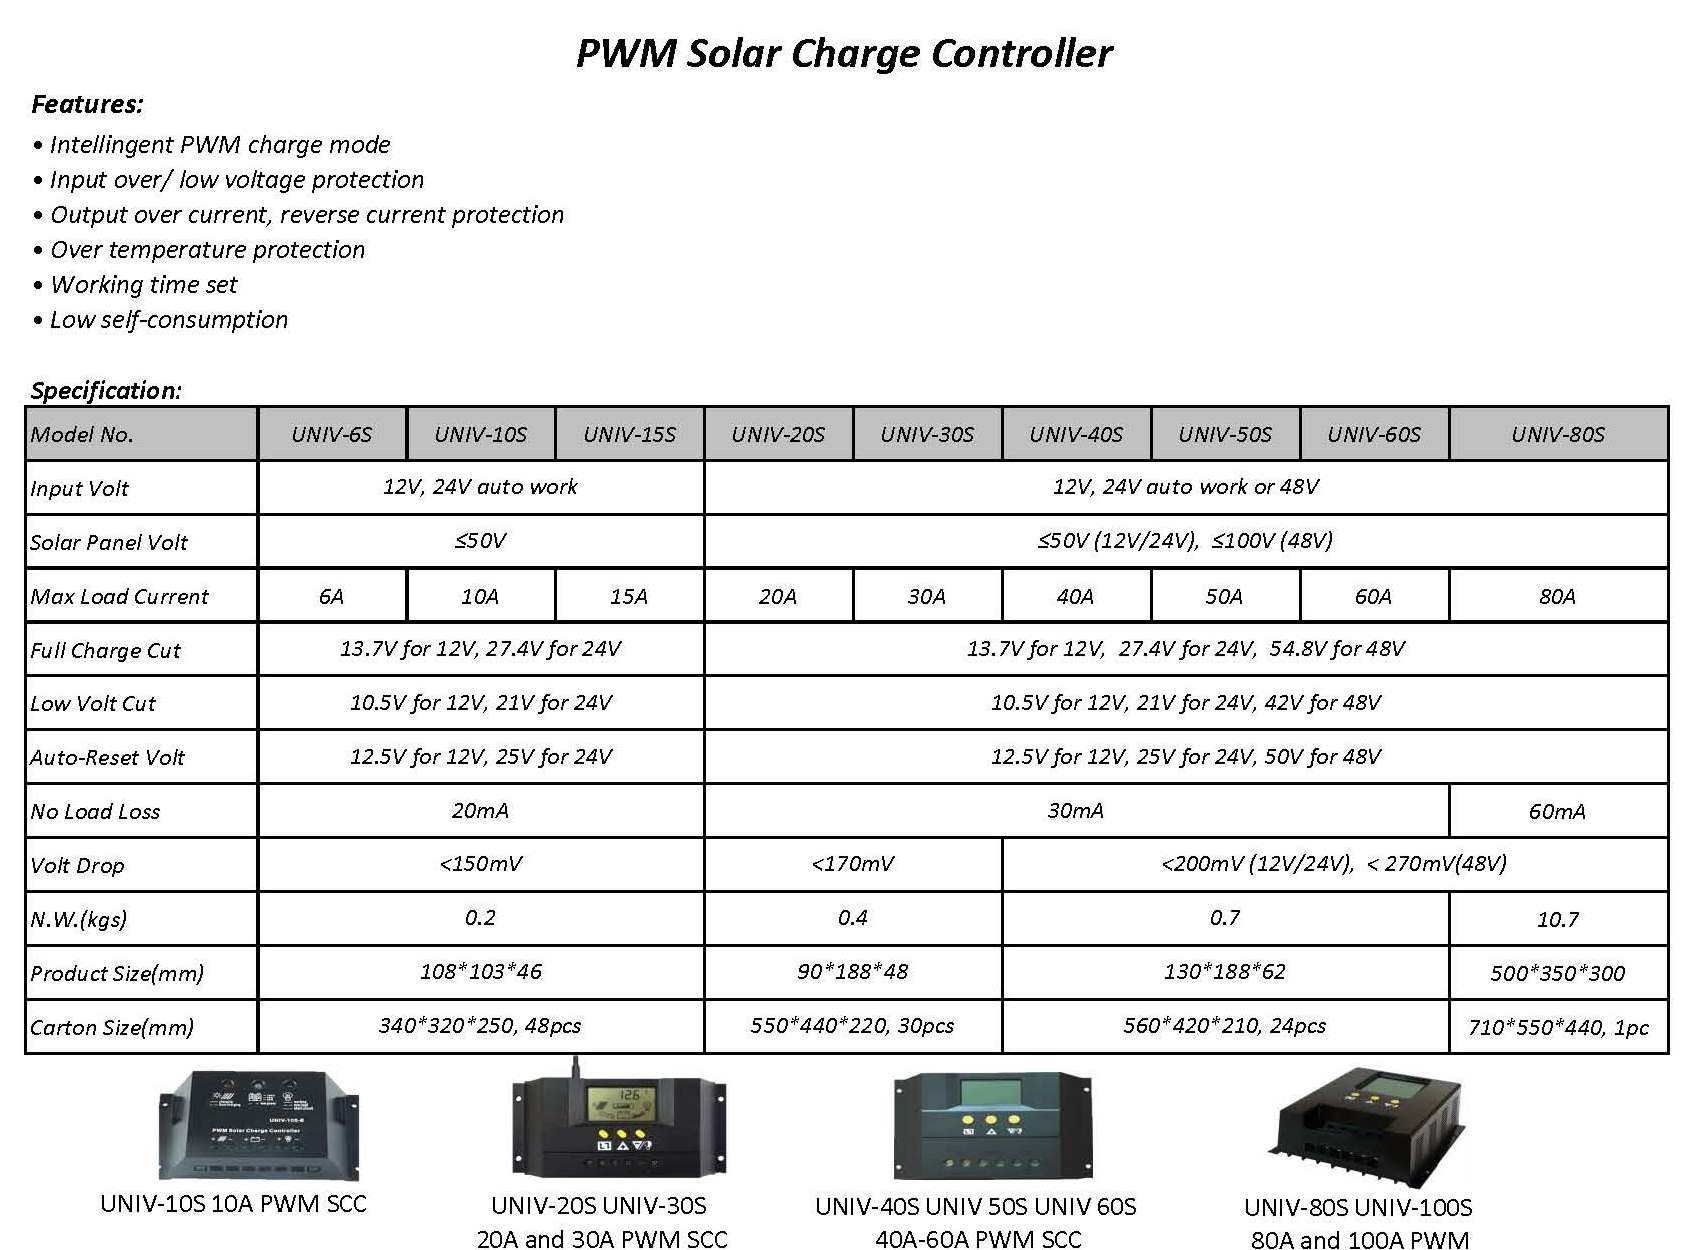 Pwm Solar Charge Controller Sunmagnet Philippines